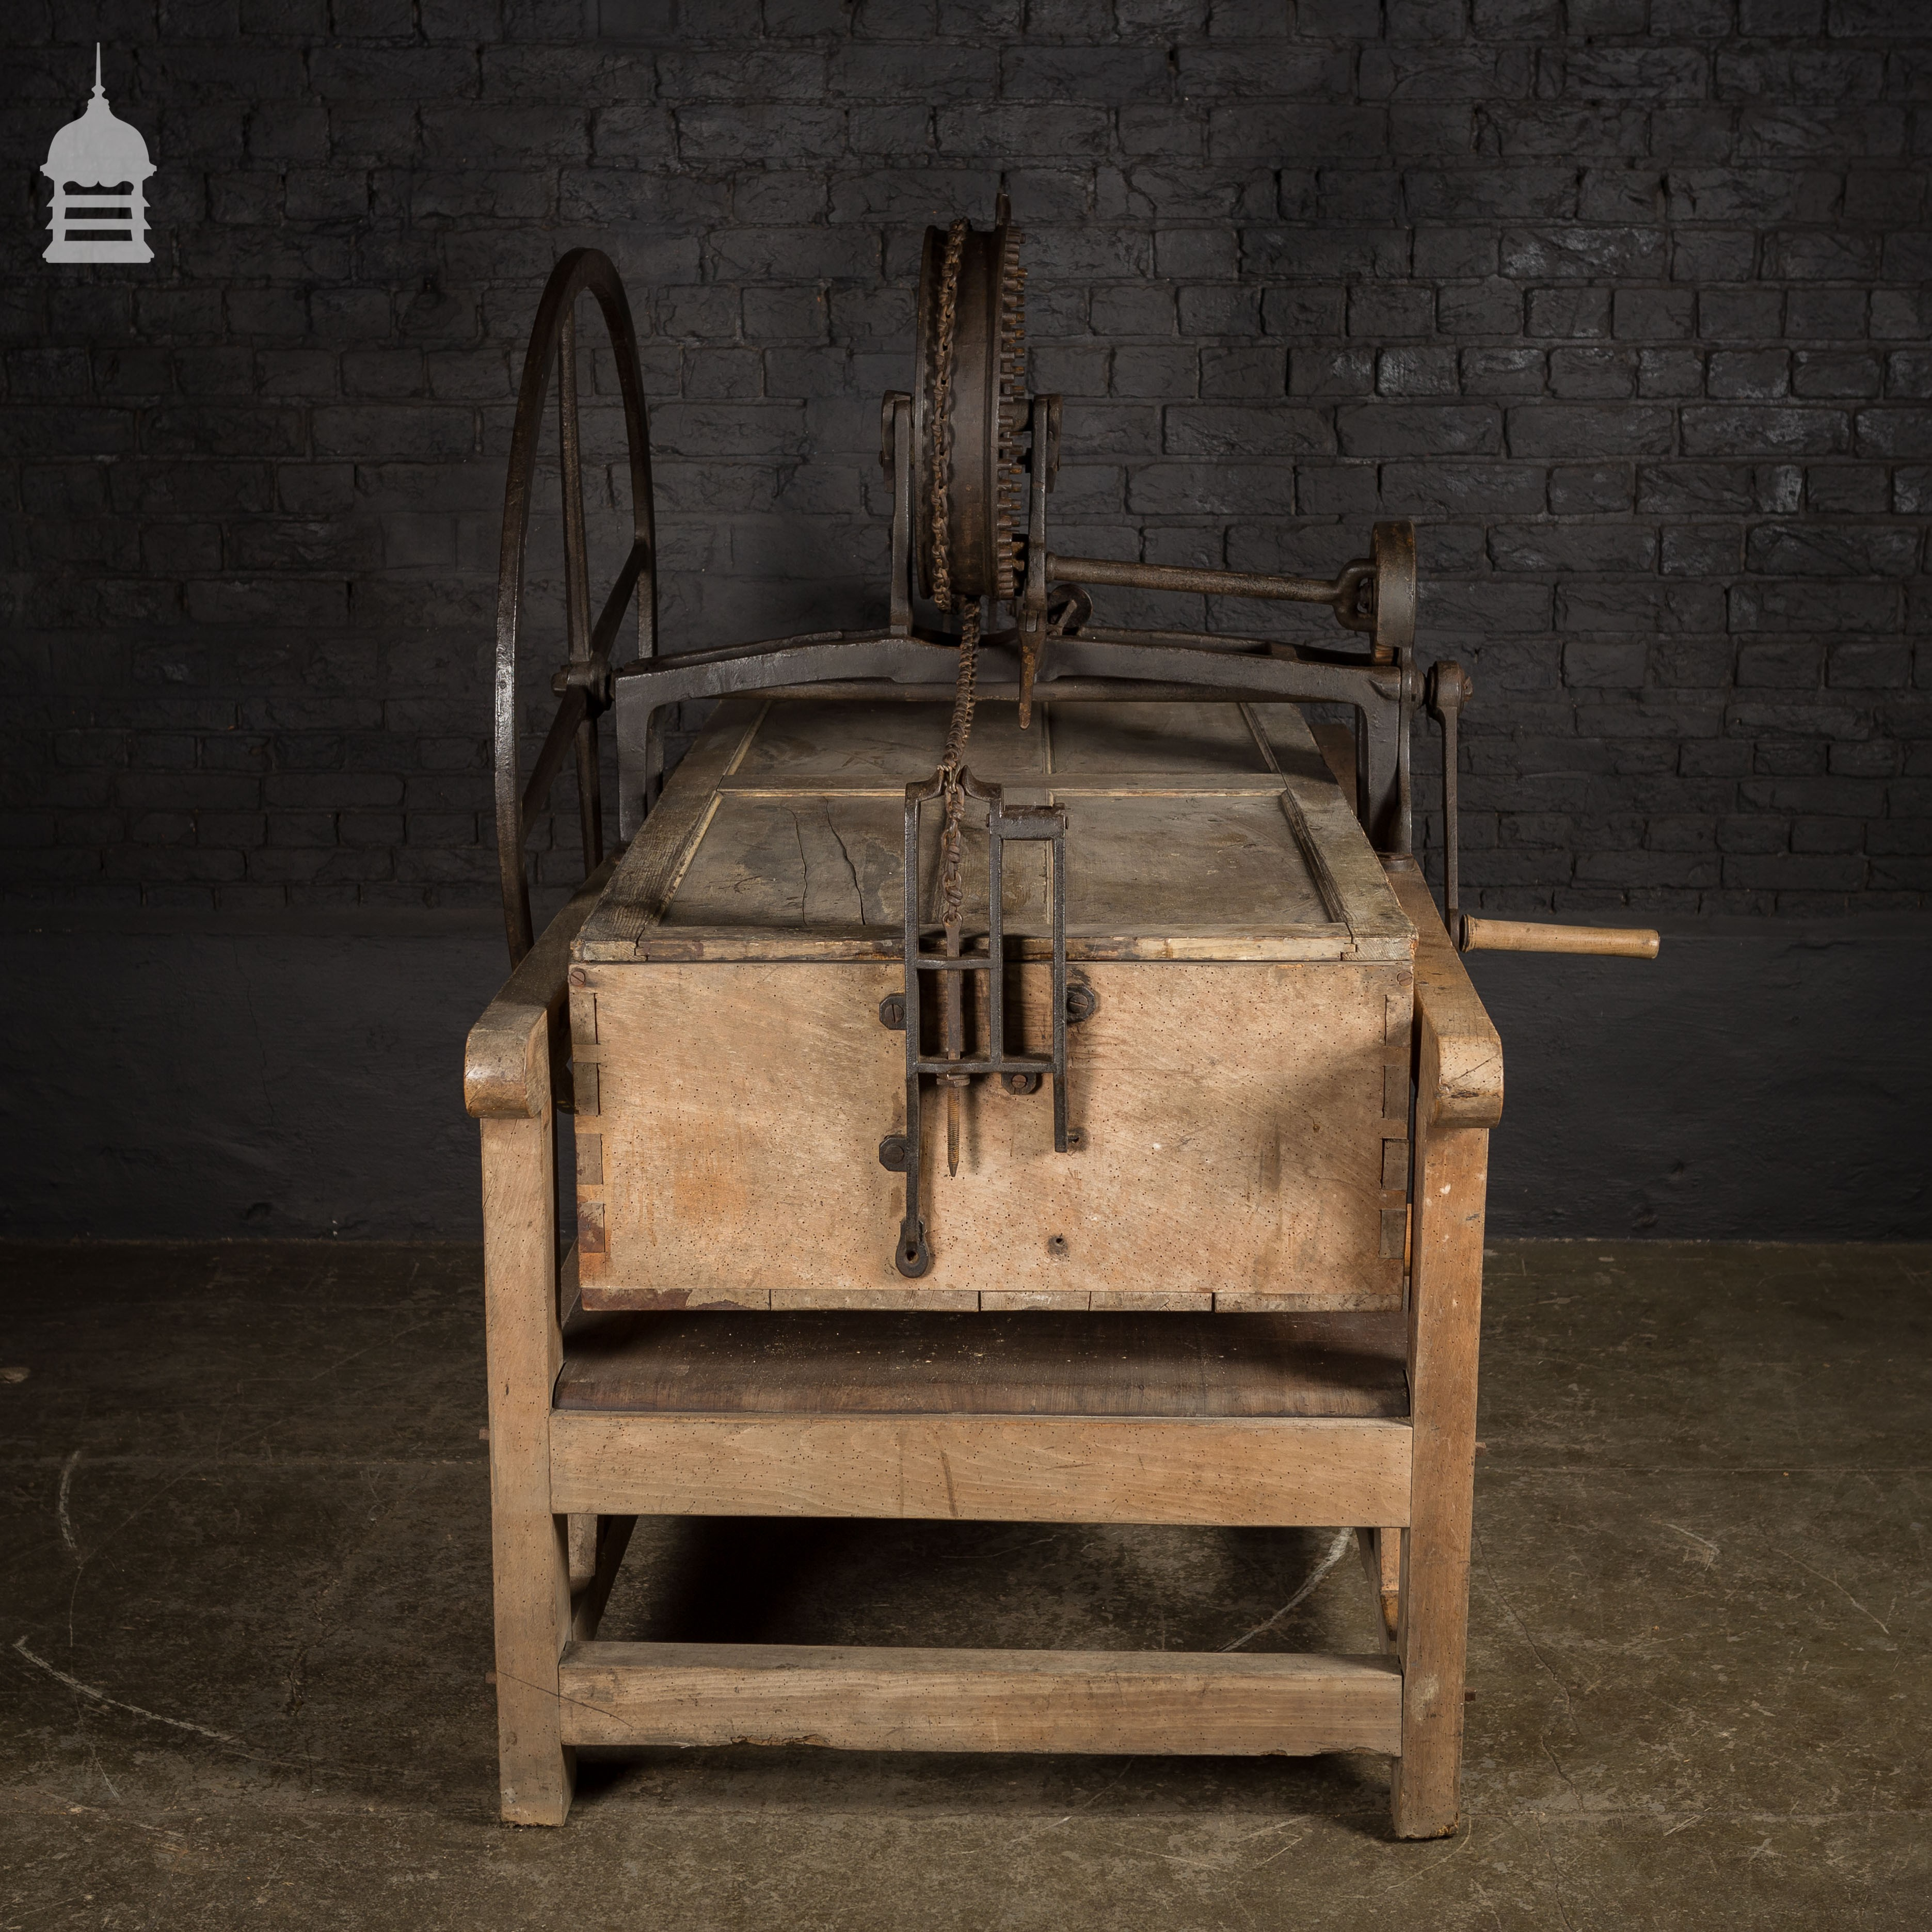 Unusual victorian baker box mangle in working condition for Odd victorian names